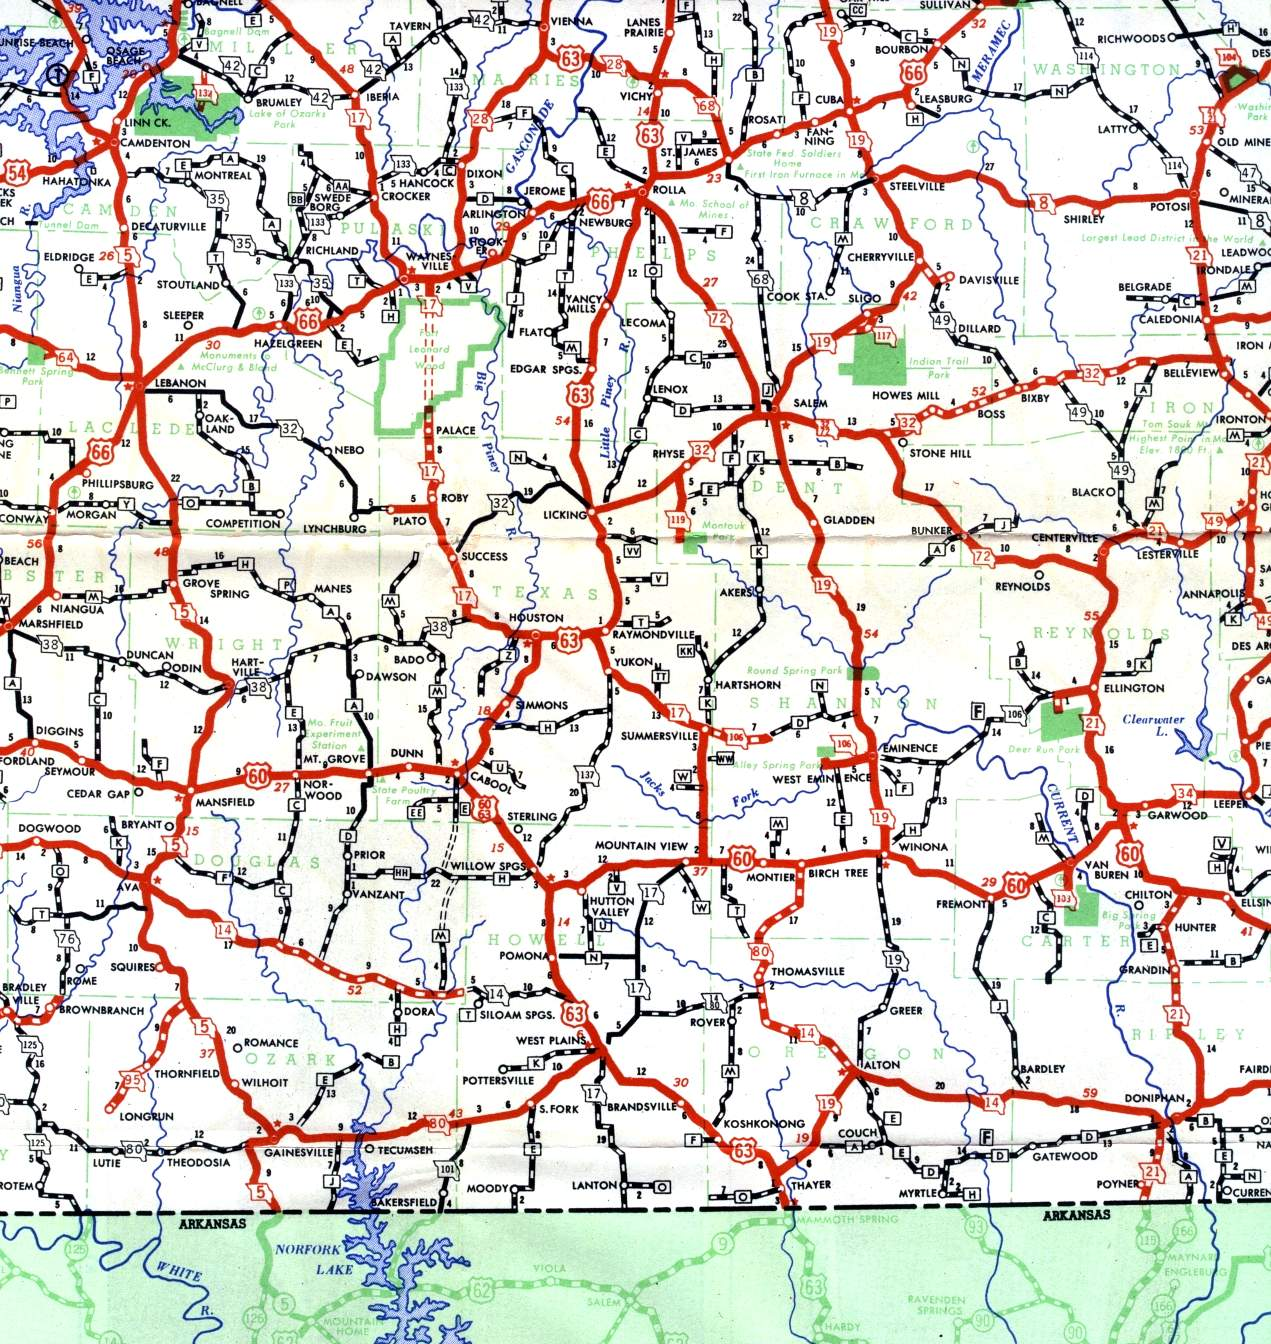 Missouri highways unofficial section of 1950 official highway map south central missouri in 1950 section of 1950 official missouri highway map sciox Image collections